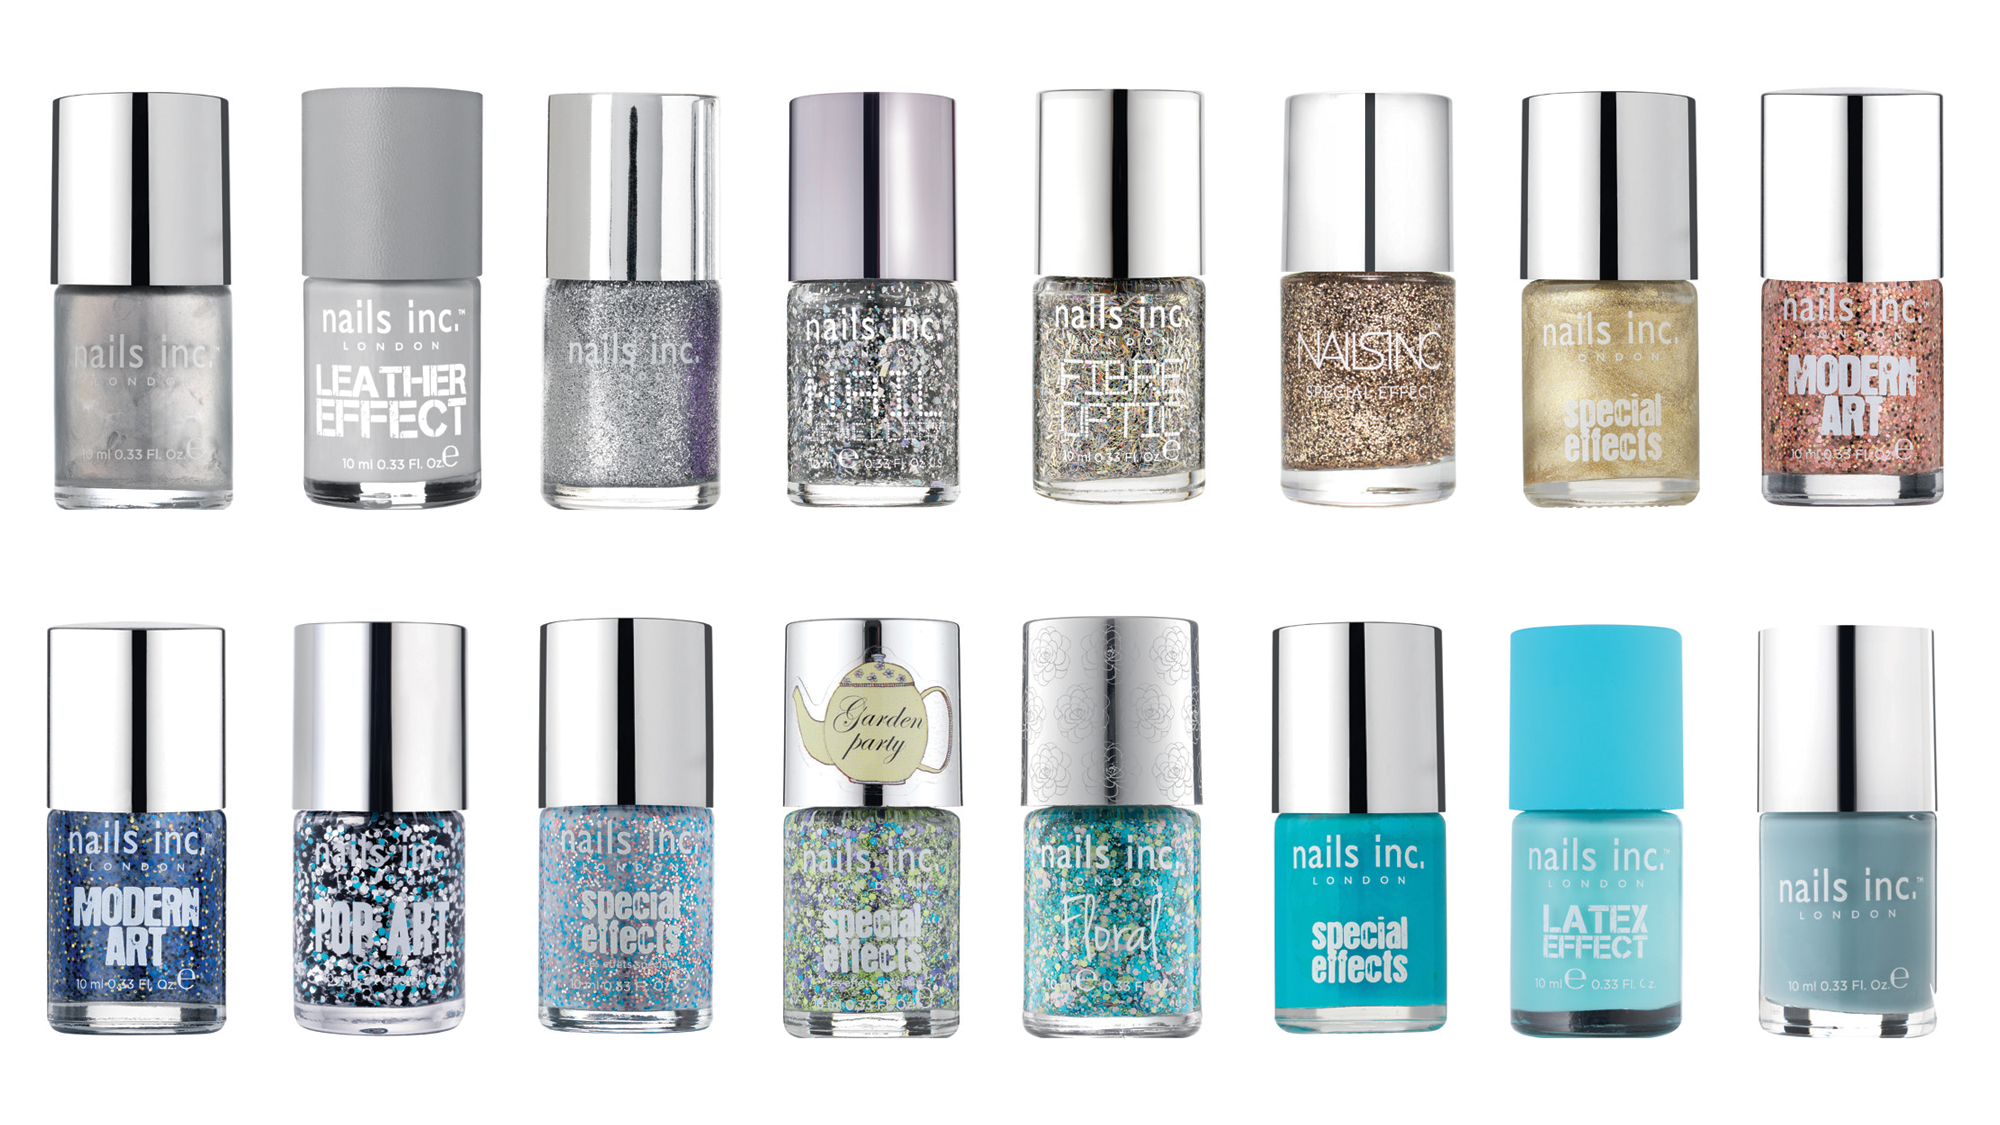 Marie claire nails